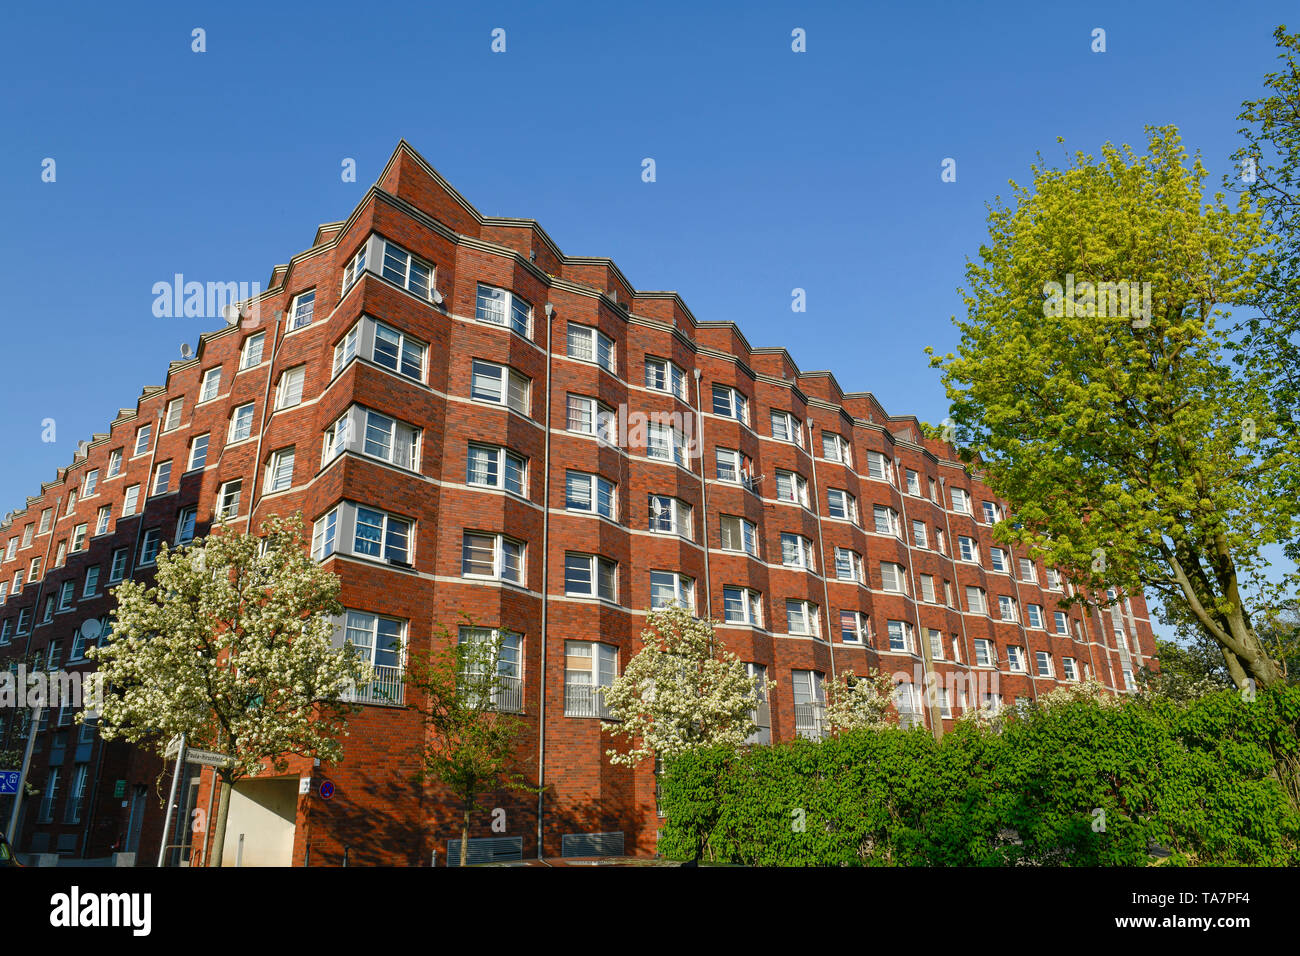 Dwelling house, former magistrate's brewery, Hirschfeld-Steig, Rose's Reinglass steep path, water town of Spandau, to hook field, Spandau, Berlin, Ger - Stock Image